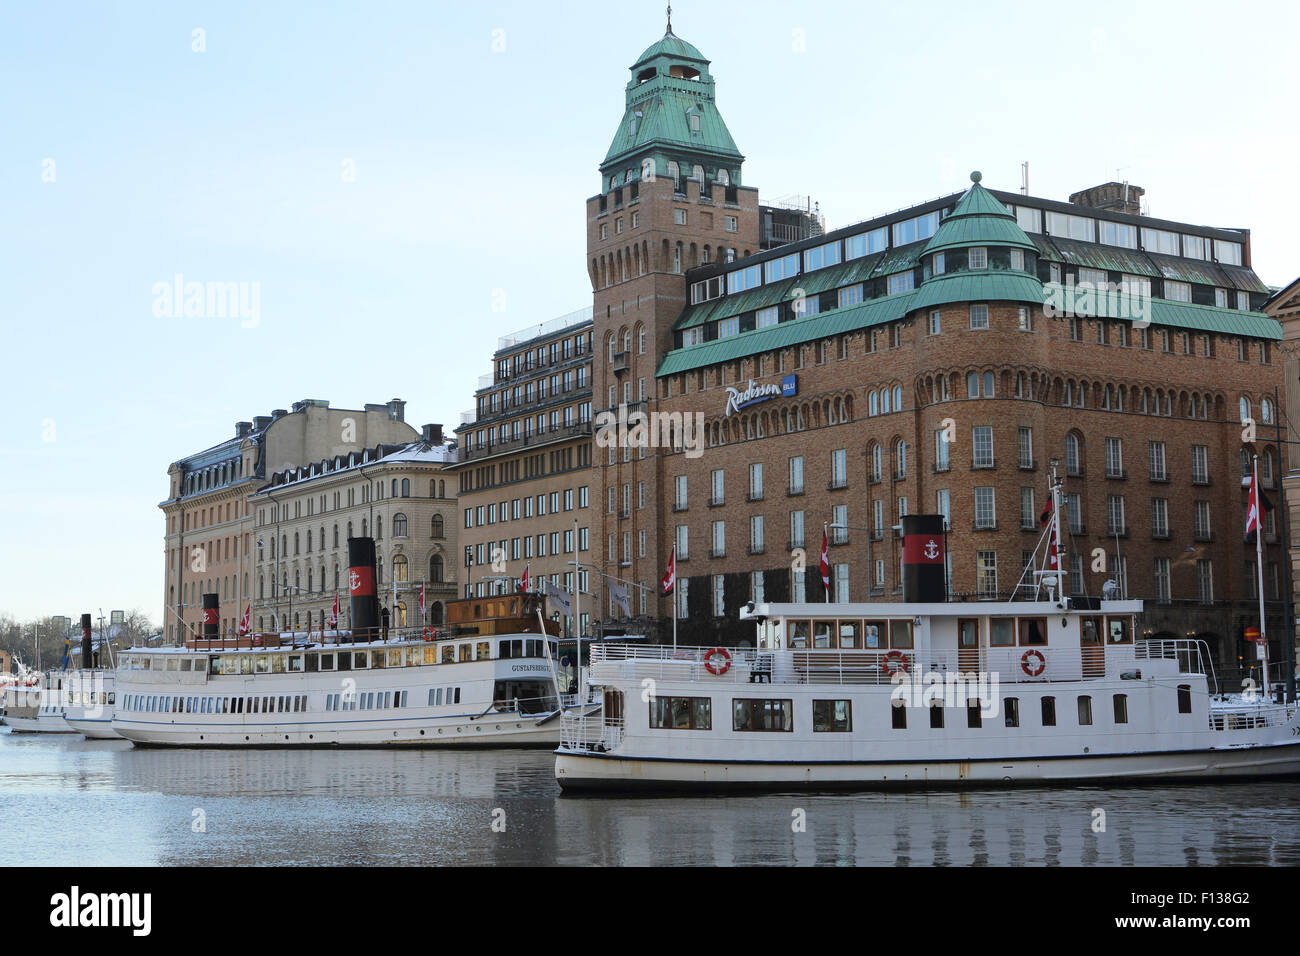 The Radisson Blu Strand Hotel in Stockholm, Sweden. The hotel overlooks the waterfront area is in the heart of the - Stock Image